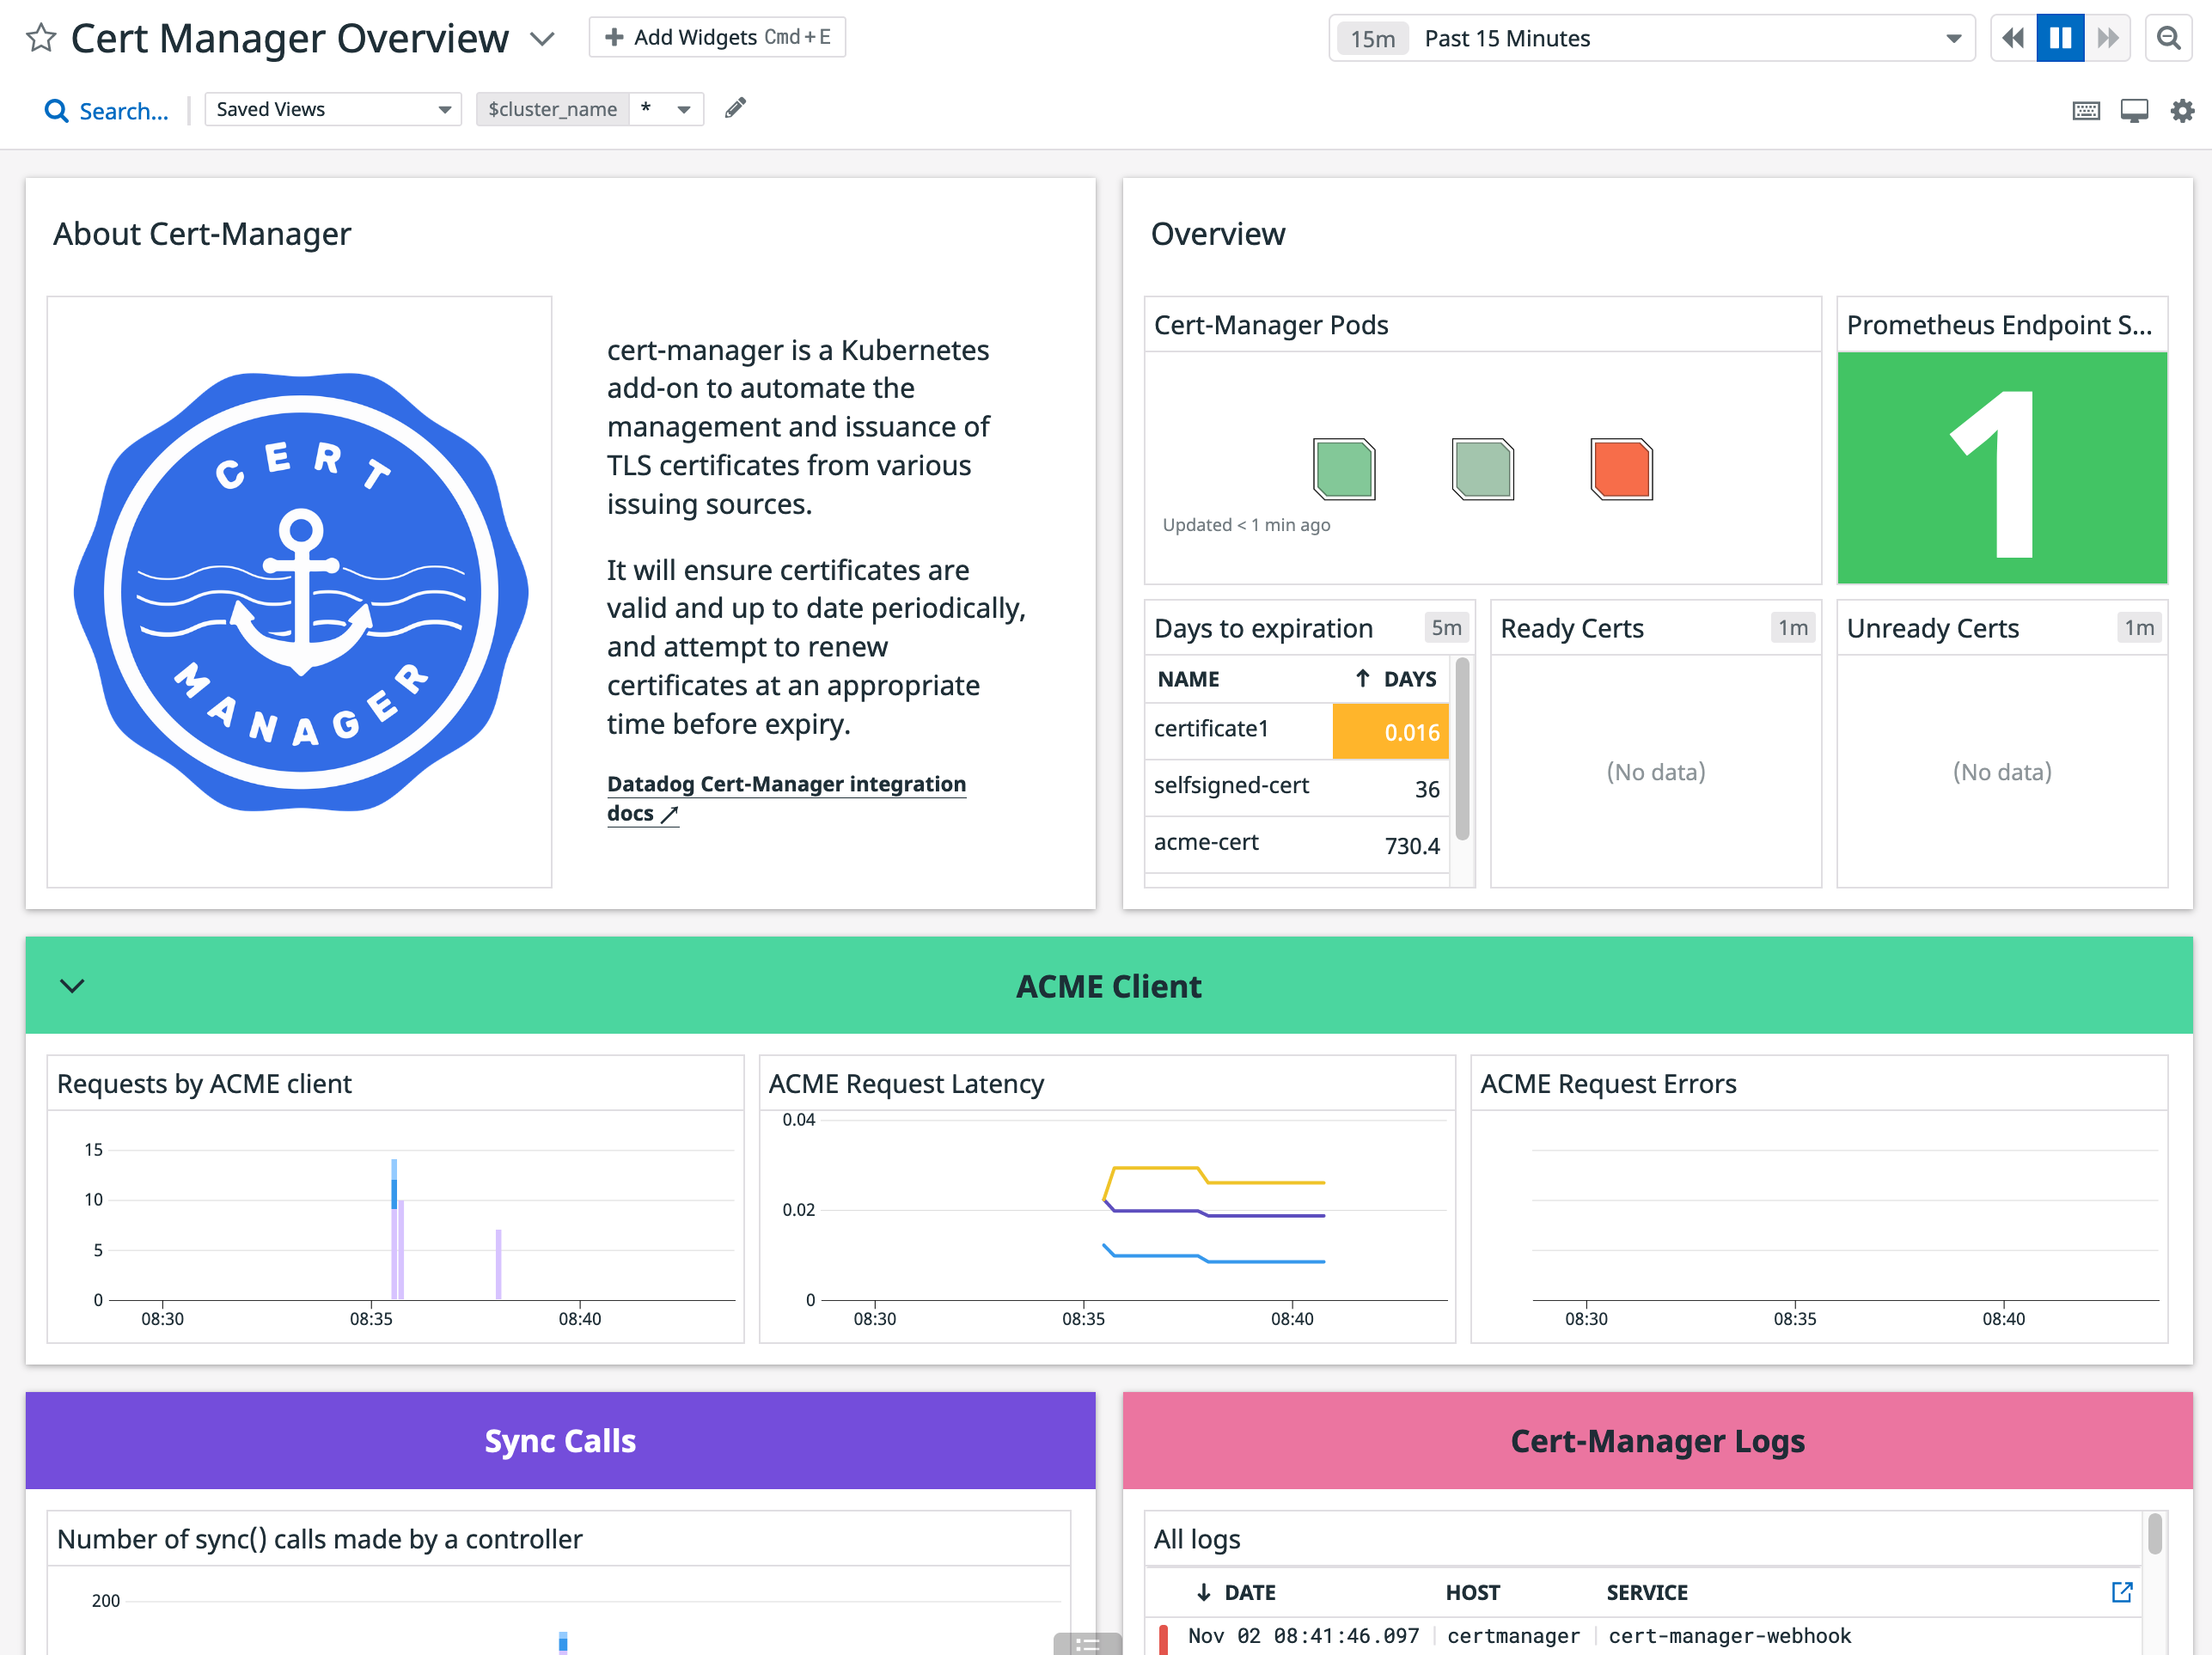 Cert-Manager Overview Dashboard